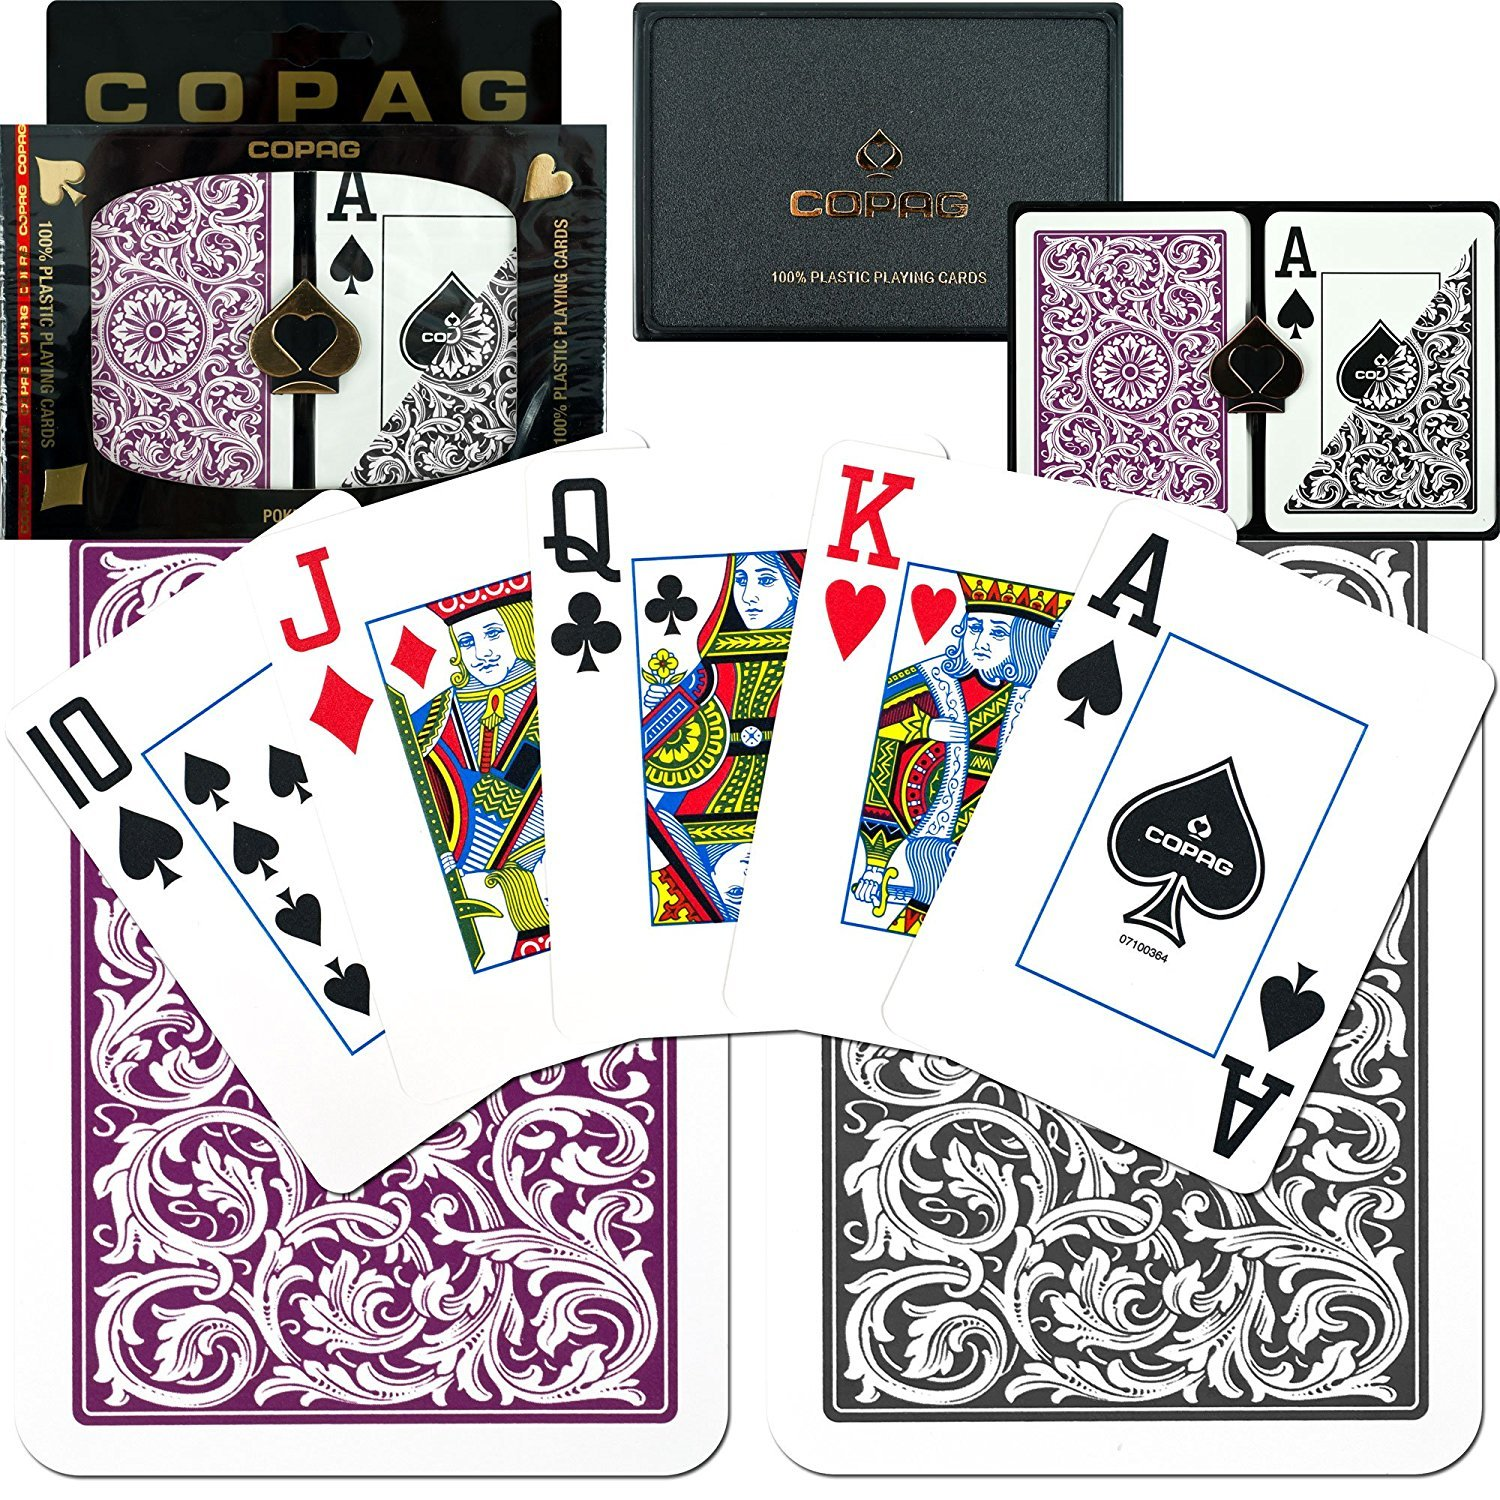 Copag 1546 Poker Purple/Gray Jumbo Index, Playing Cards 3 Pack